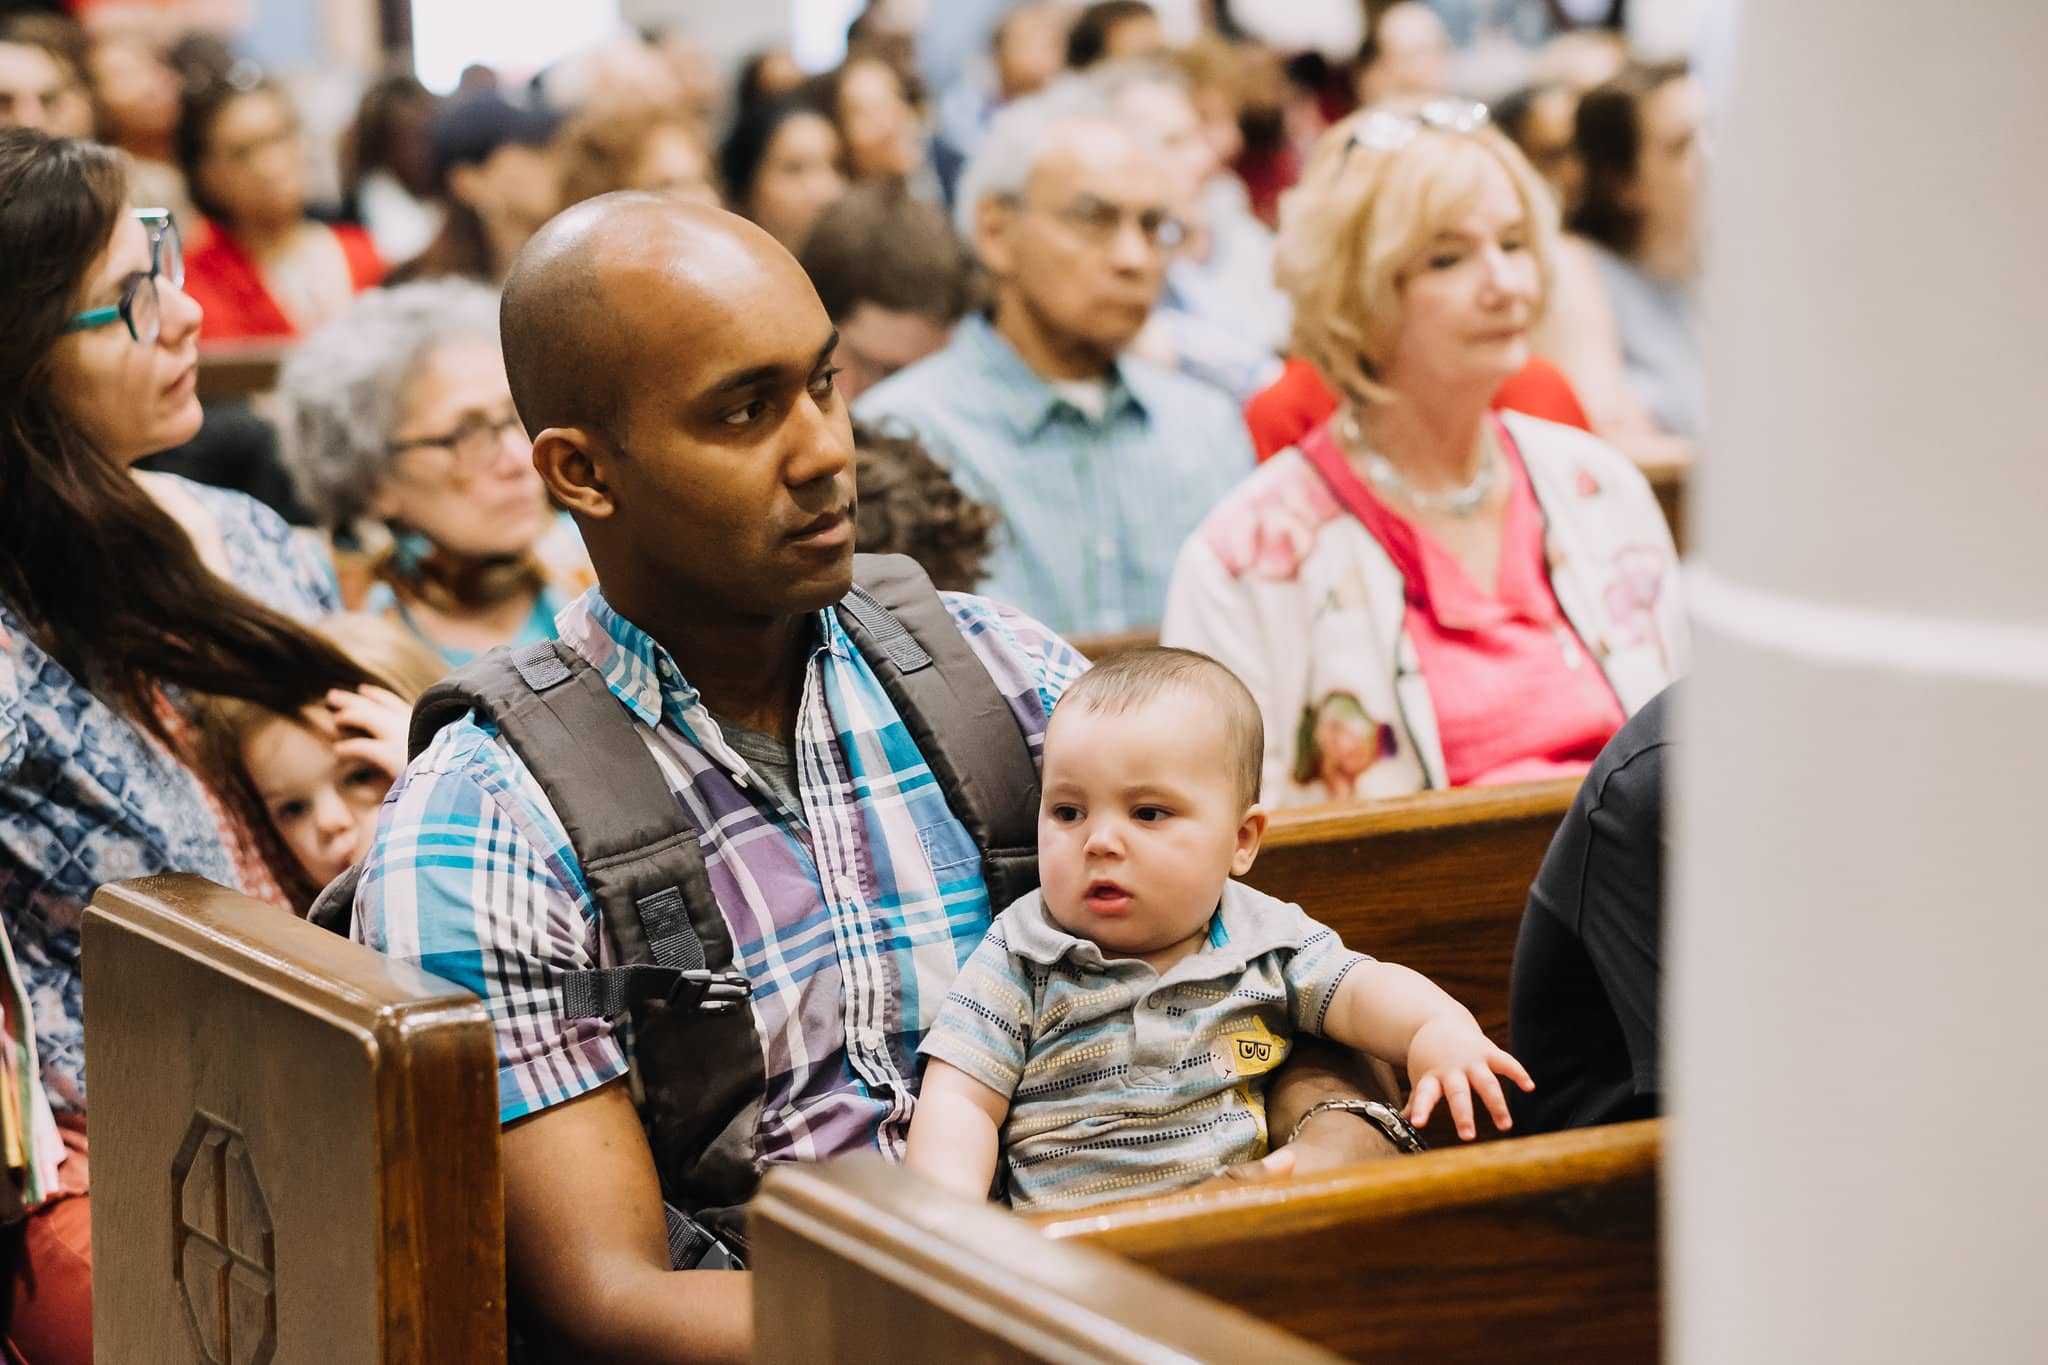 family-diversity-welcoming-community-st-francis-de-sales-church-new-york-city.jpg